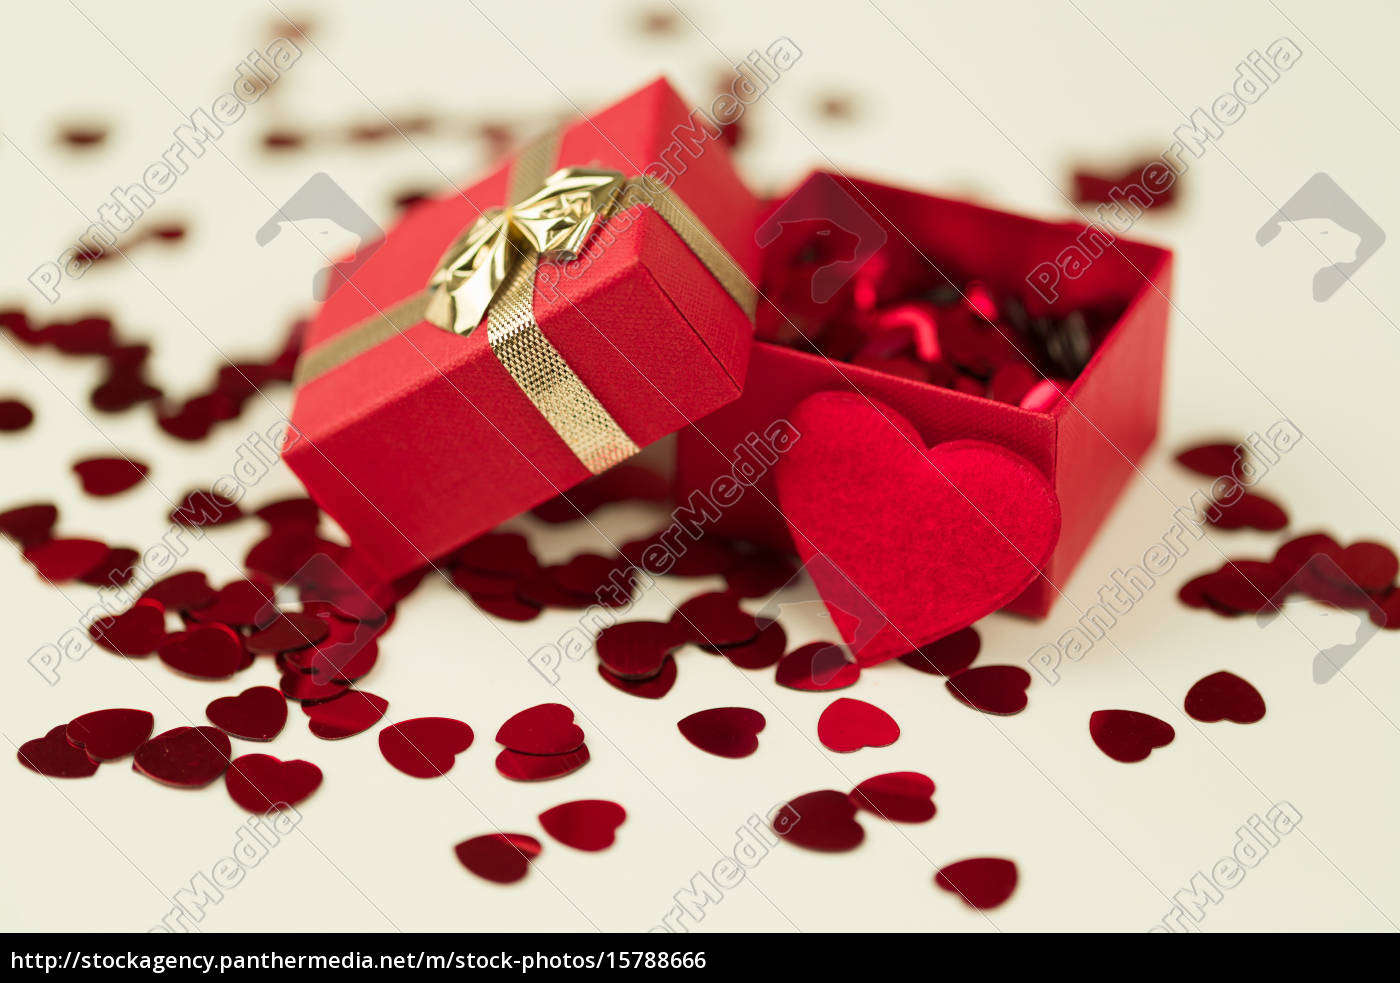 red, hearts, confetti, on, wooden, background - 15788666